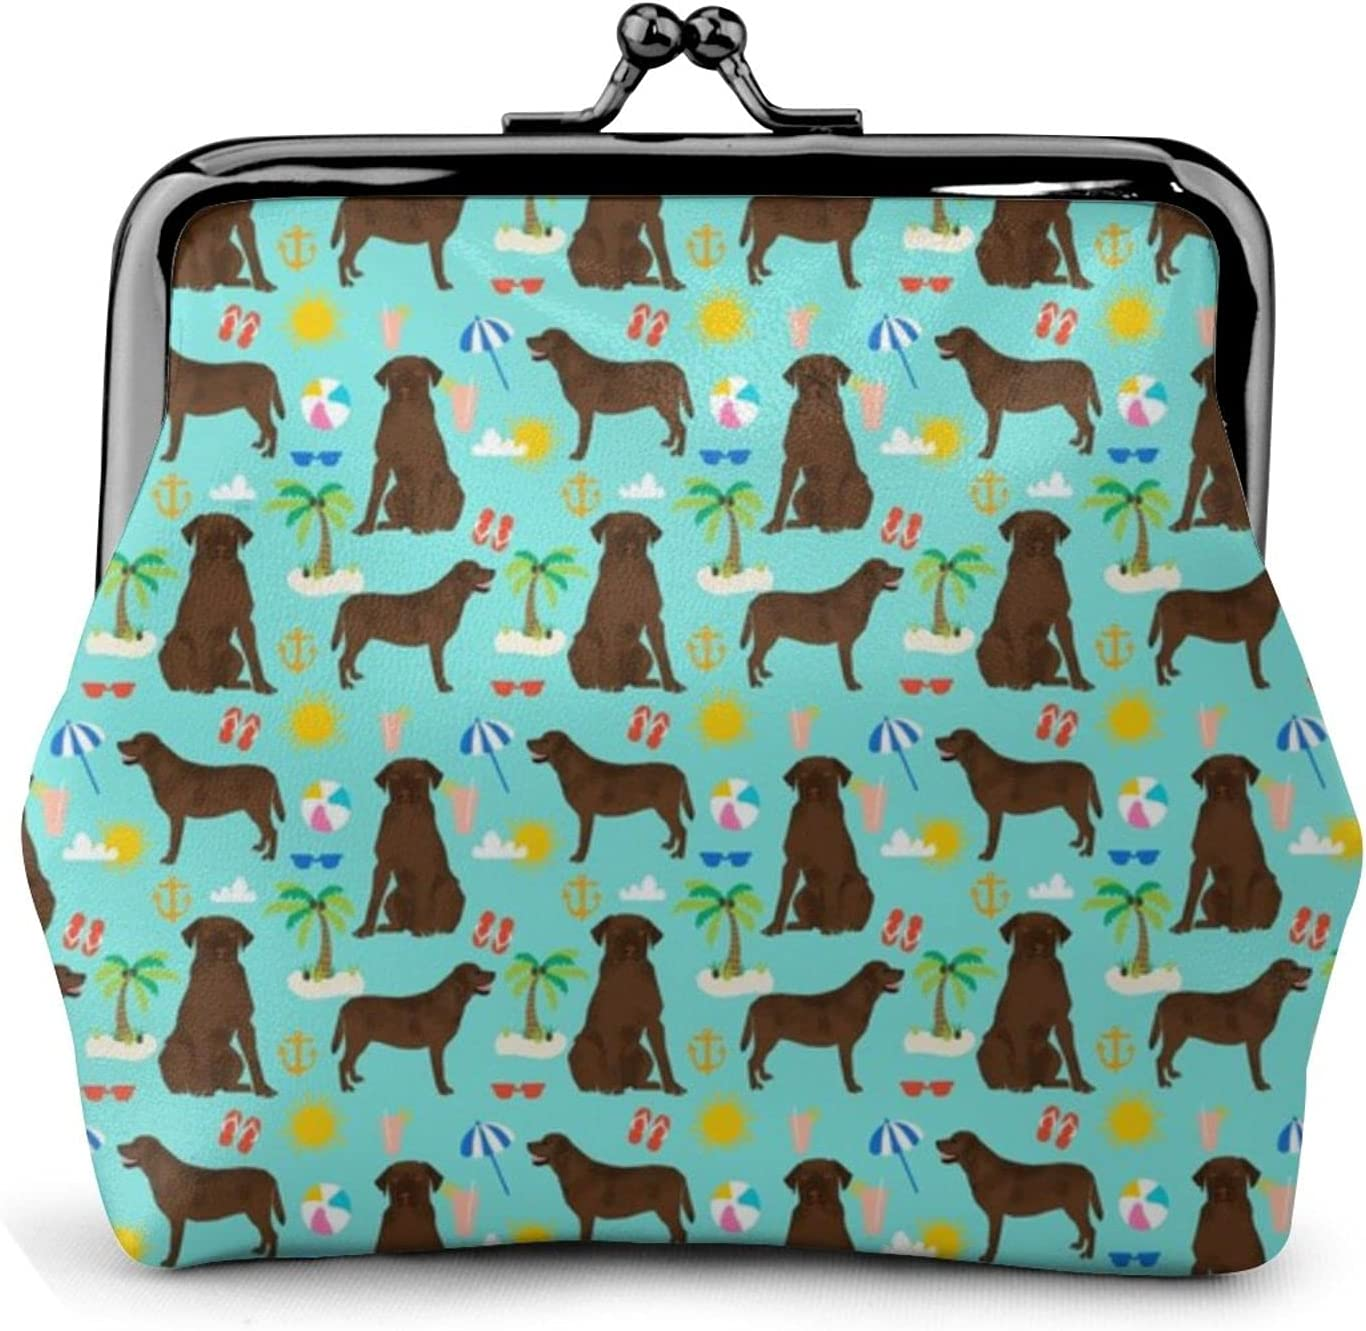 Chocolate Labrador Retriever, 1563 Leather Coin Purse Kiss Lock Change Pouch Vintage Clasp Closure Buckle Wallet Small Women Gift